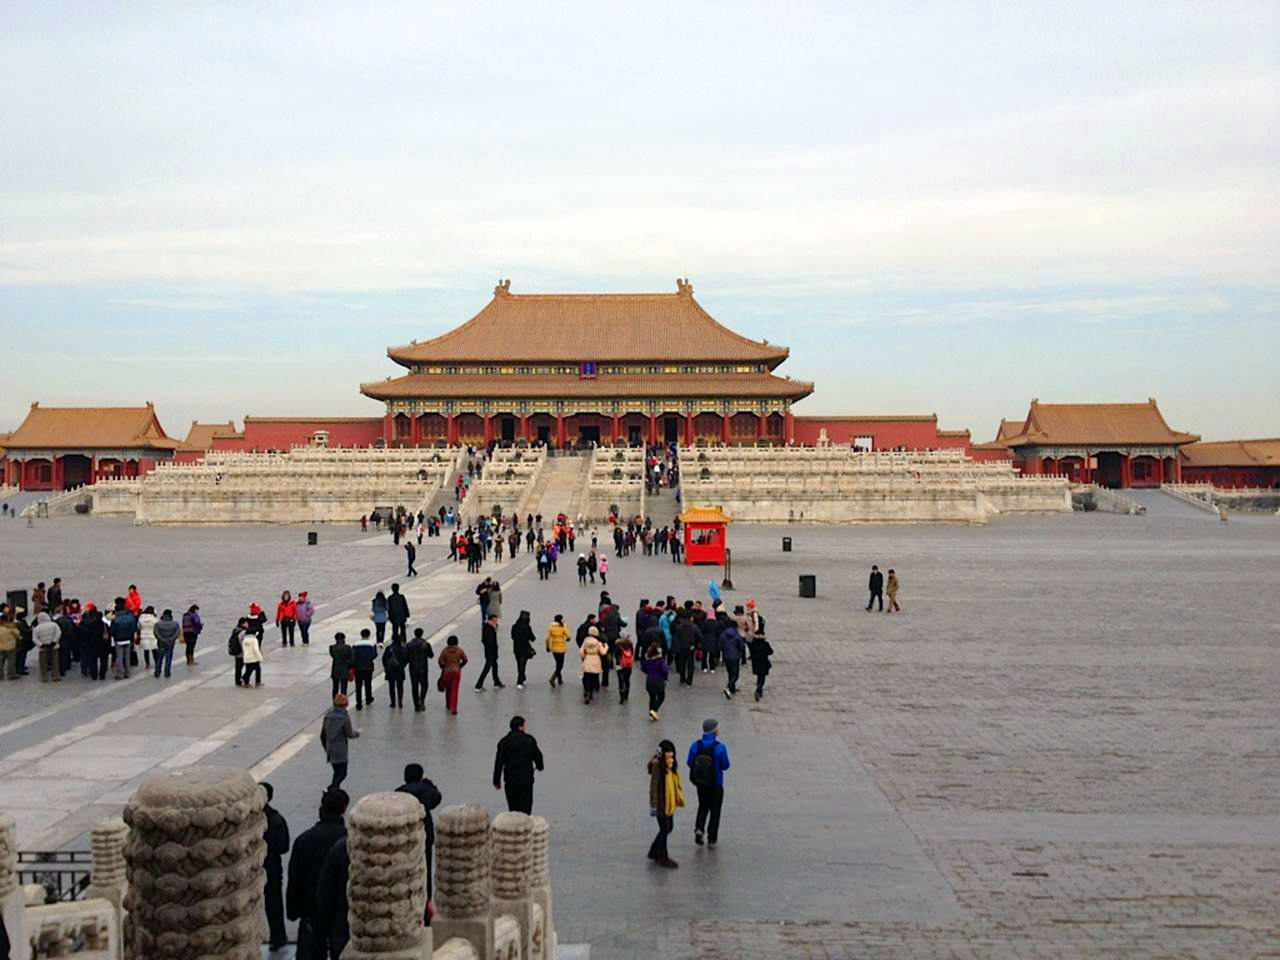 I'm still going through photos that friends and I took in China, including these of the Forbidden City in Beijing. Built in the 15th century, it was the imperial palace compound from the Ming to the end of the Qing Dynasties. Extraordinary!